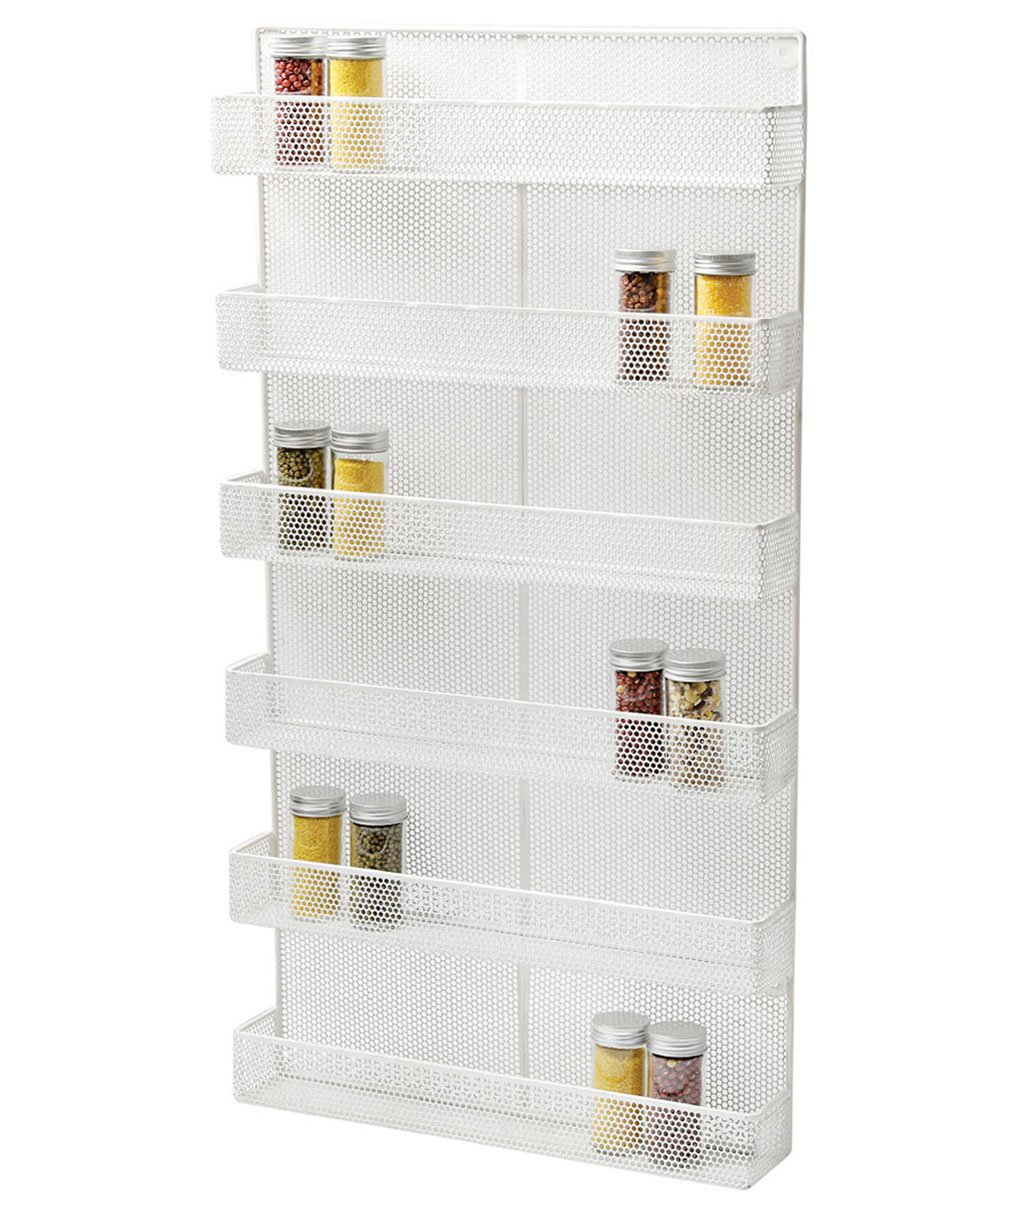 ESYLIFE 6 Tier Wall Mounted Spice Rack Organizer Kitchen Spice Storage Shelf - Made of Sturdy Punching Net, White by Esy-Life (Image #1)